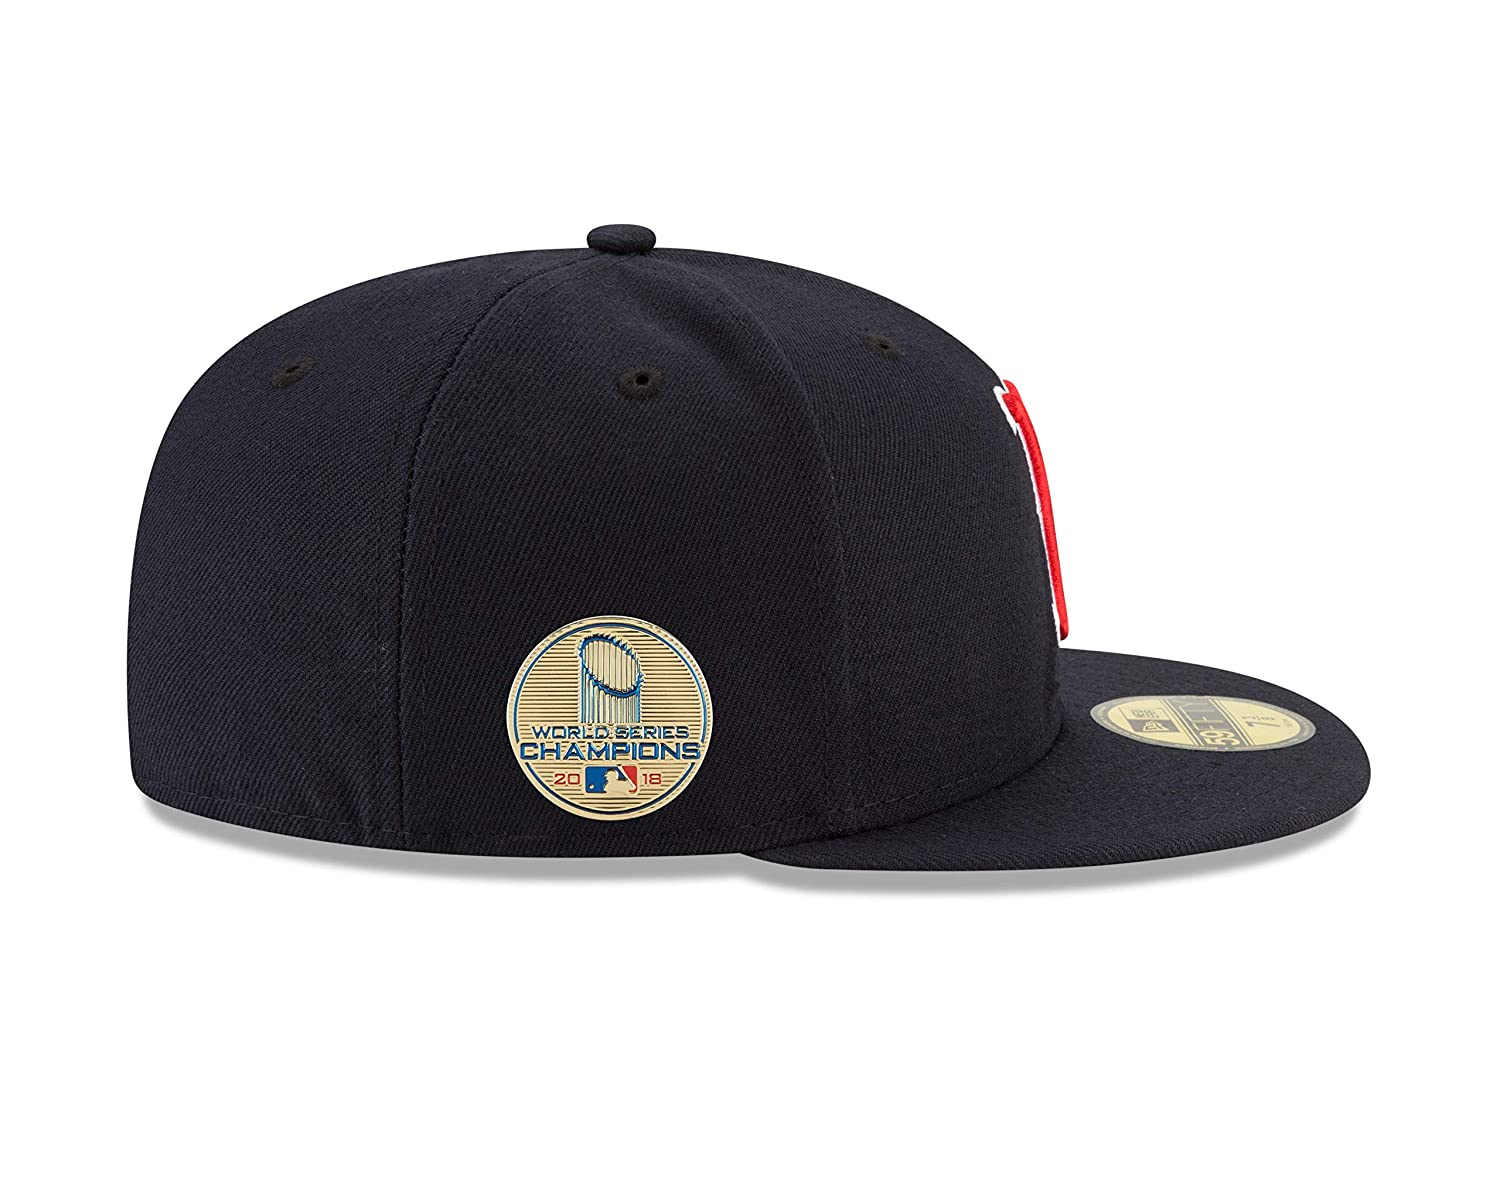 the best attitude 0abac 4faf3 Amazon.com   New Era Boston Red Sox 2018 World Series Champions Side Patch  59FIFTY Fitted Hat - Navy   Clothing